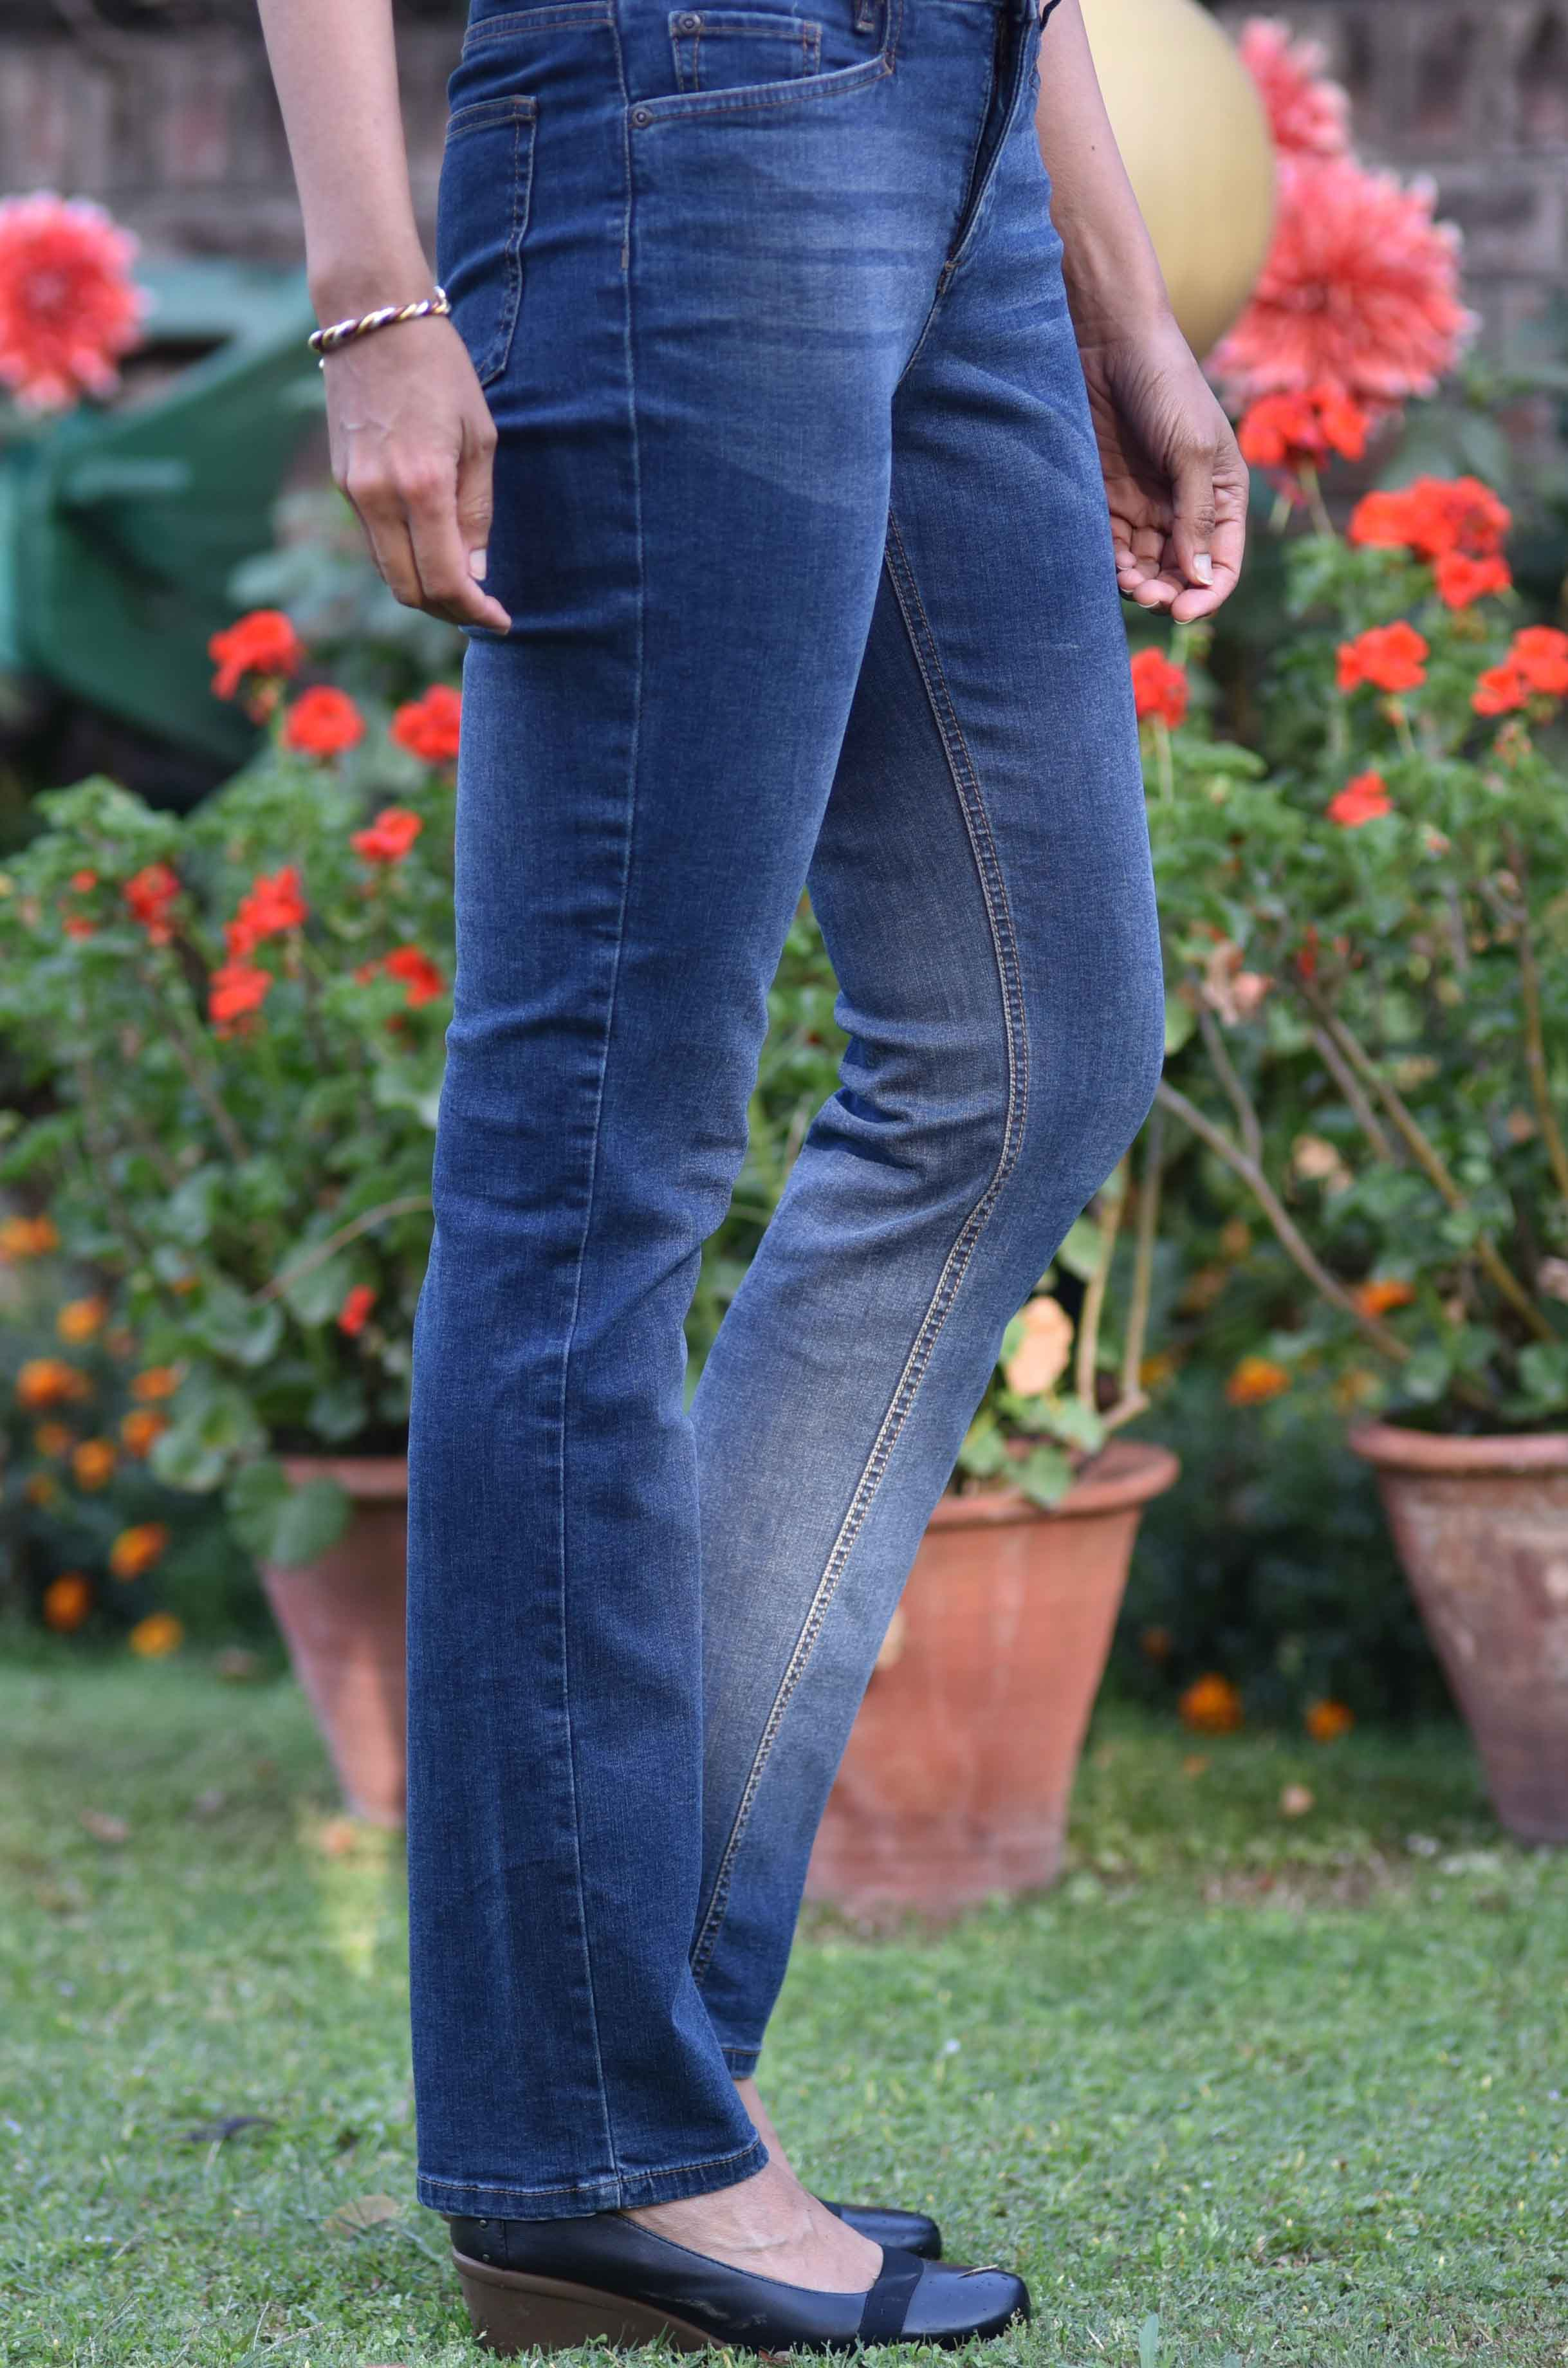 The JJill Smooth Fit Straight Leg Jeans are awesome! Image©gunjanvirk